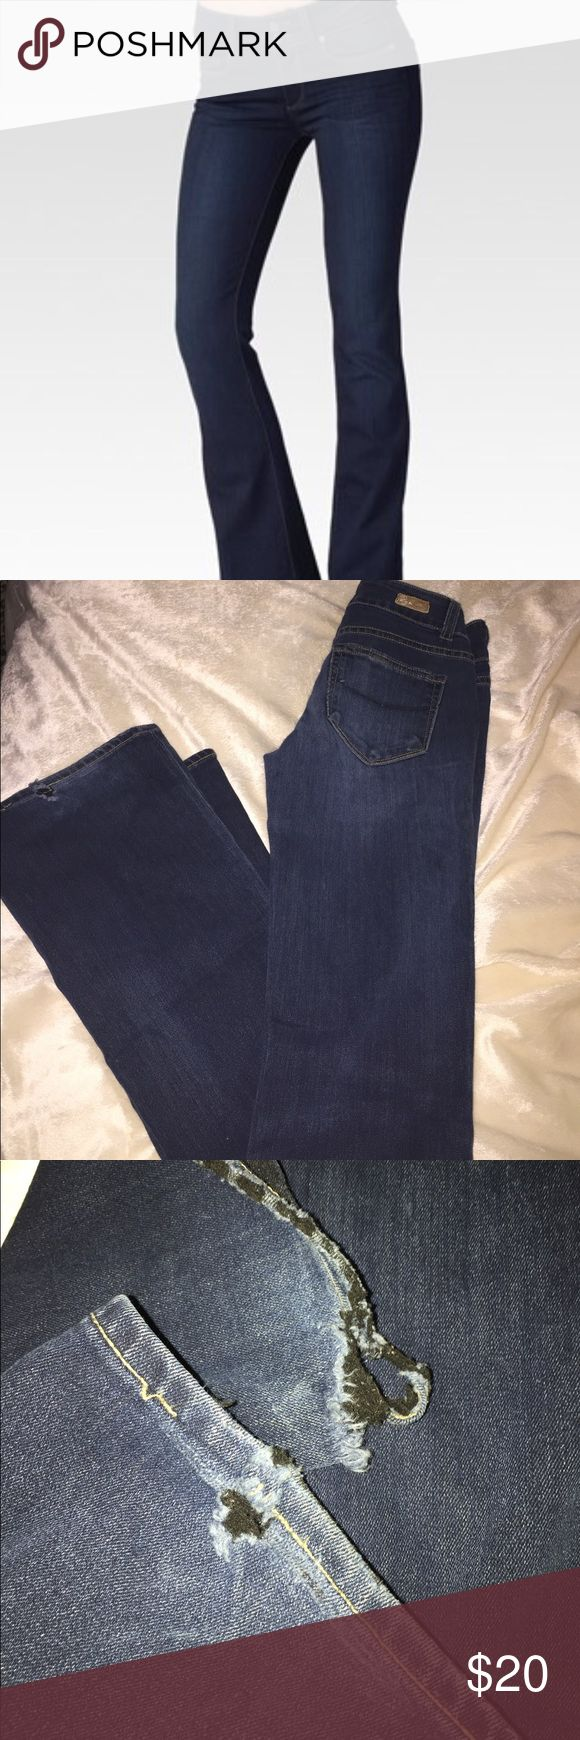 Paige bootcut jeans Pre loved but still have a lot of life left in them super comfy Paige hidden hills bootcut jeans size 25 the only flaw is at the bottom of the jeans they are a little torn from dragging other then that nothing else is wrong with them Paige Jeans Jeans Boot Cut